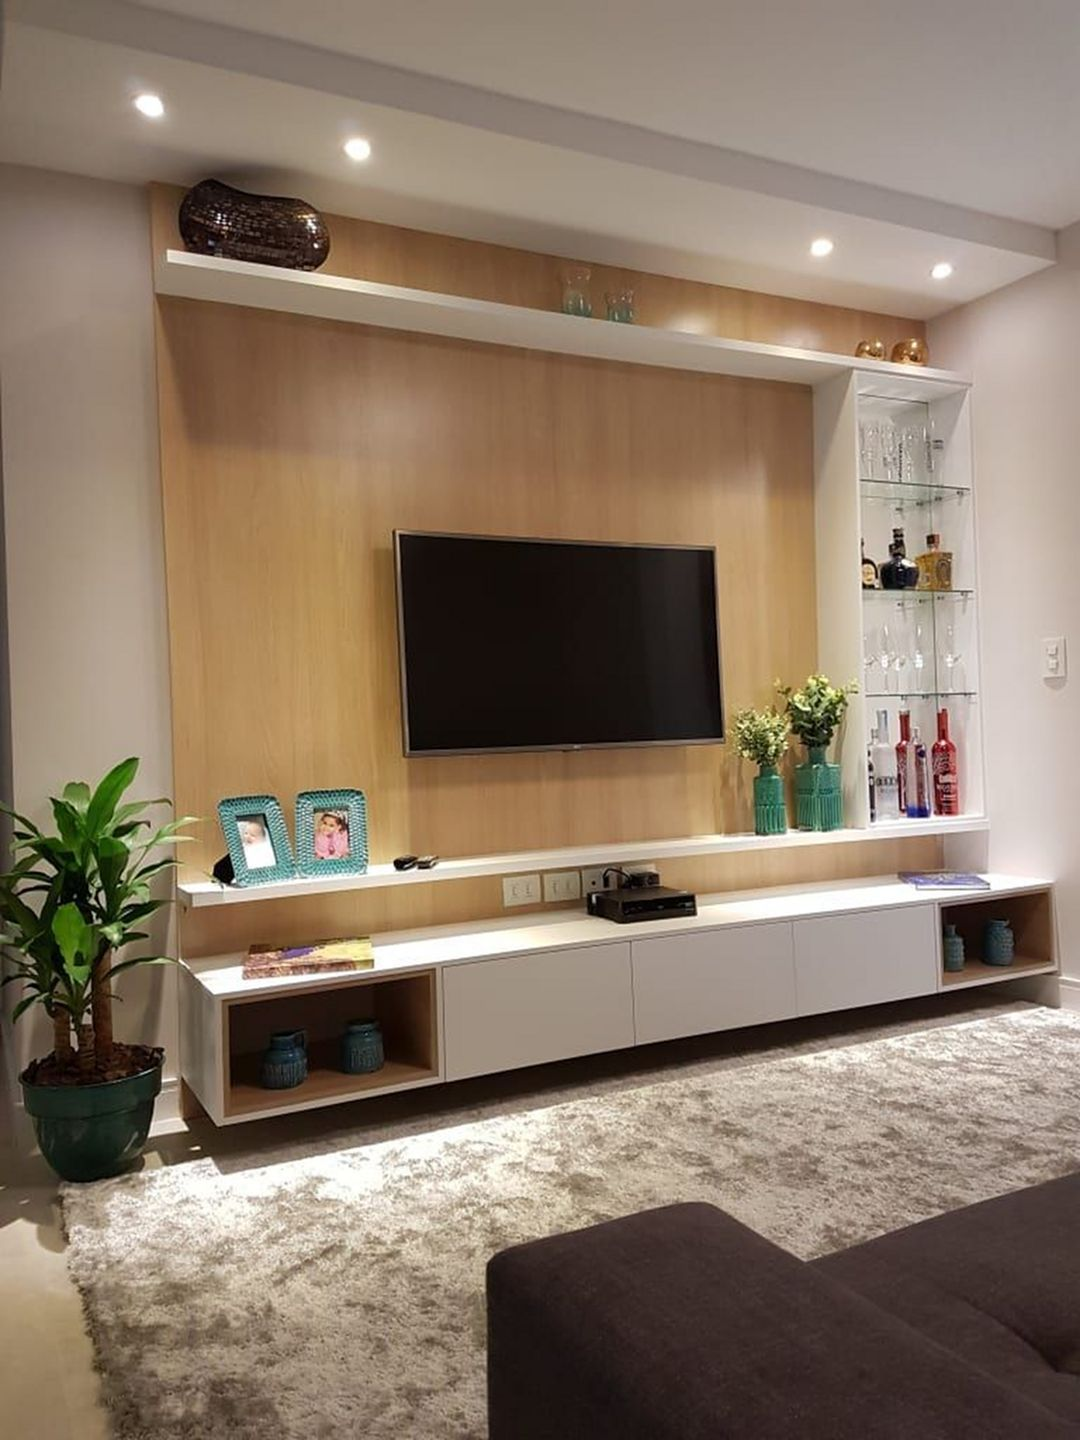 amazing wall tv cabinet designs for cozy family room also unit wallpaper ideas to upgrade living design rh pinterest